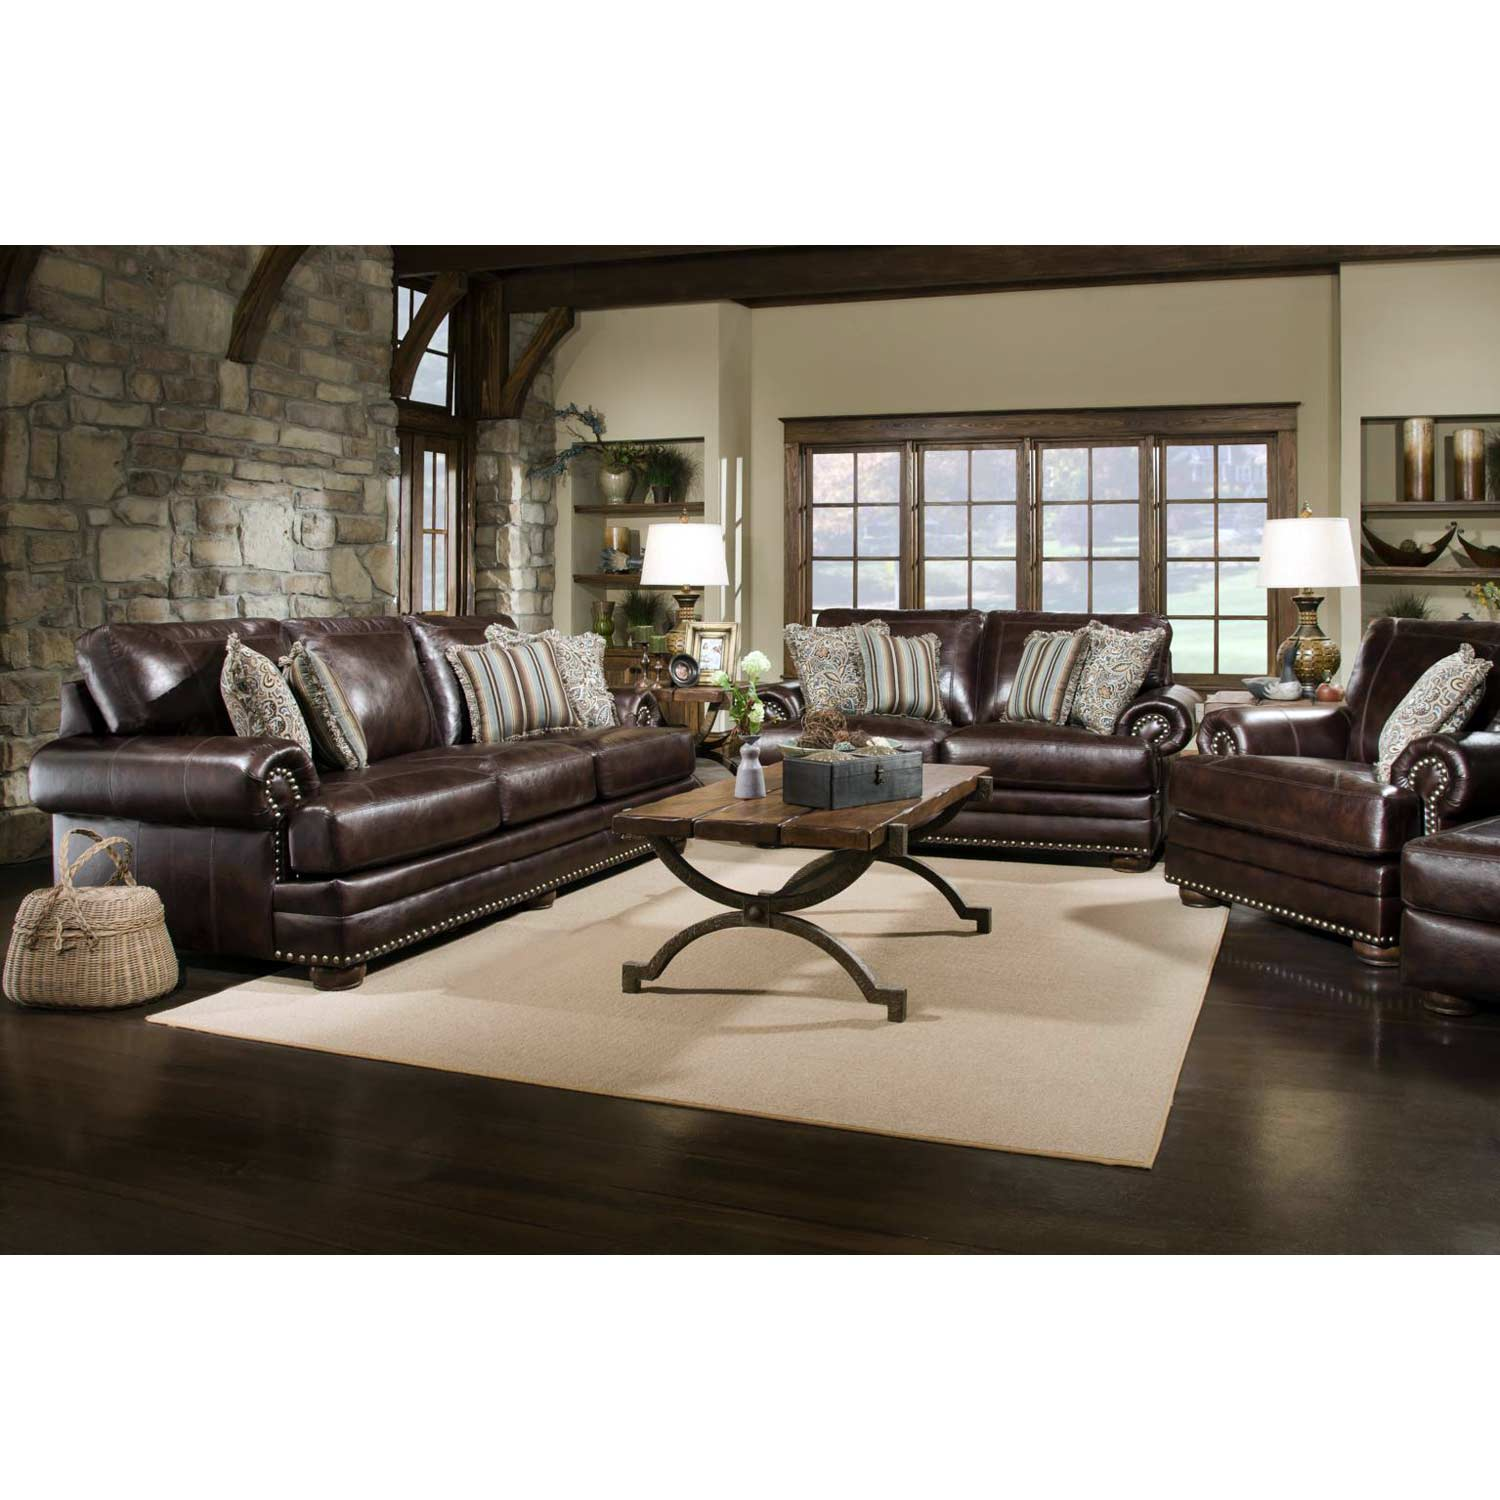 Rose Upholstered Loveseat - Nail Heads, Bun Feet, Chocolate - CHF-529002